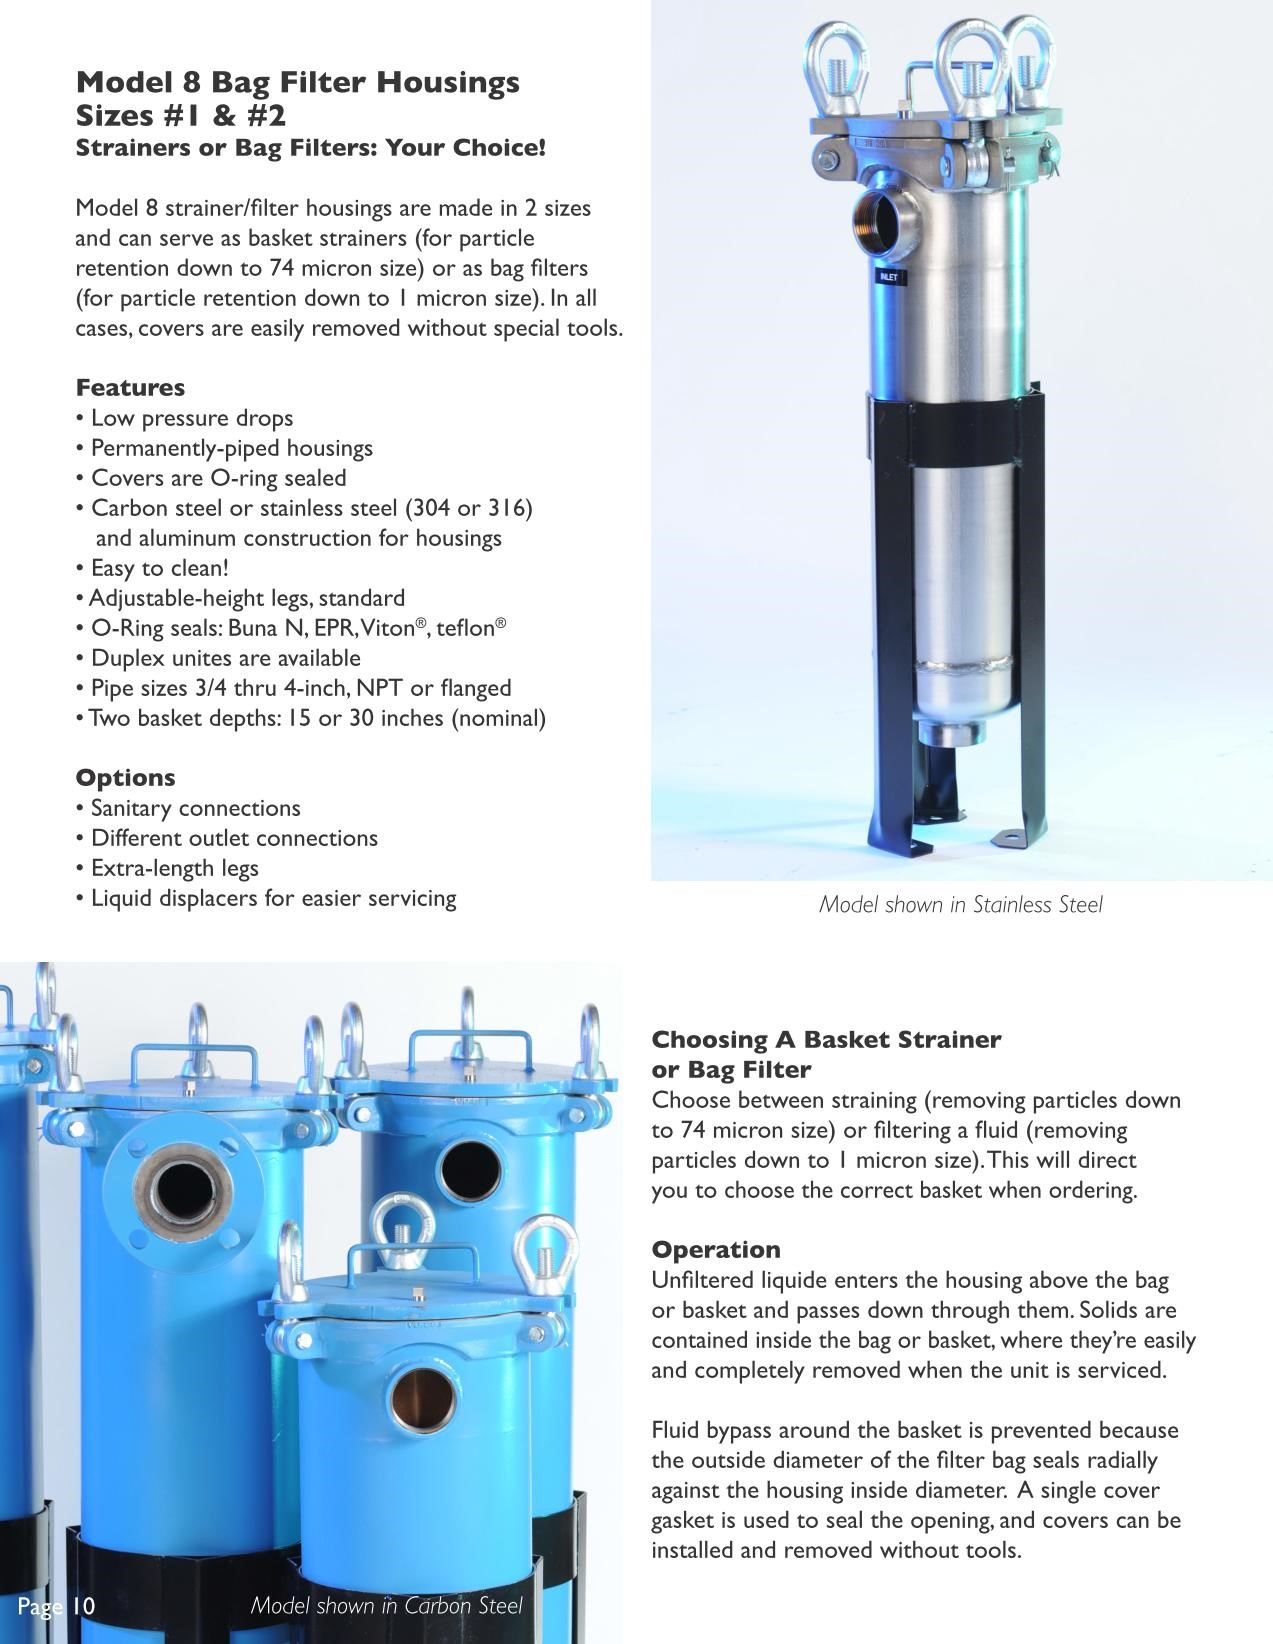 Filter Technology Model 8 sizes 1 and 2